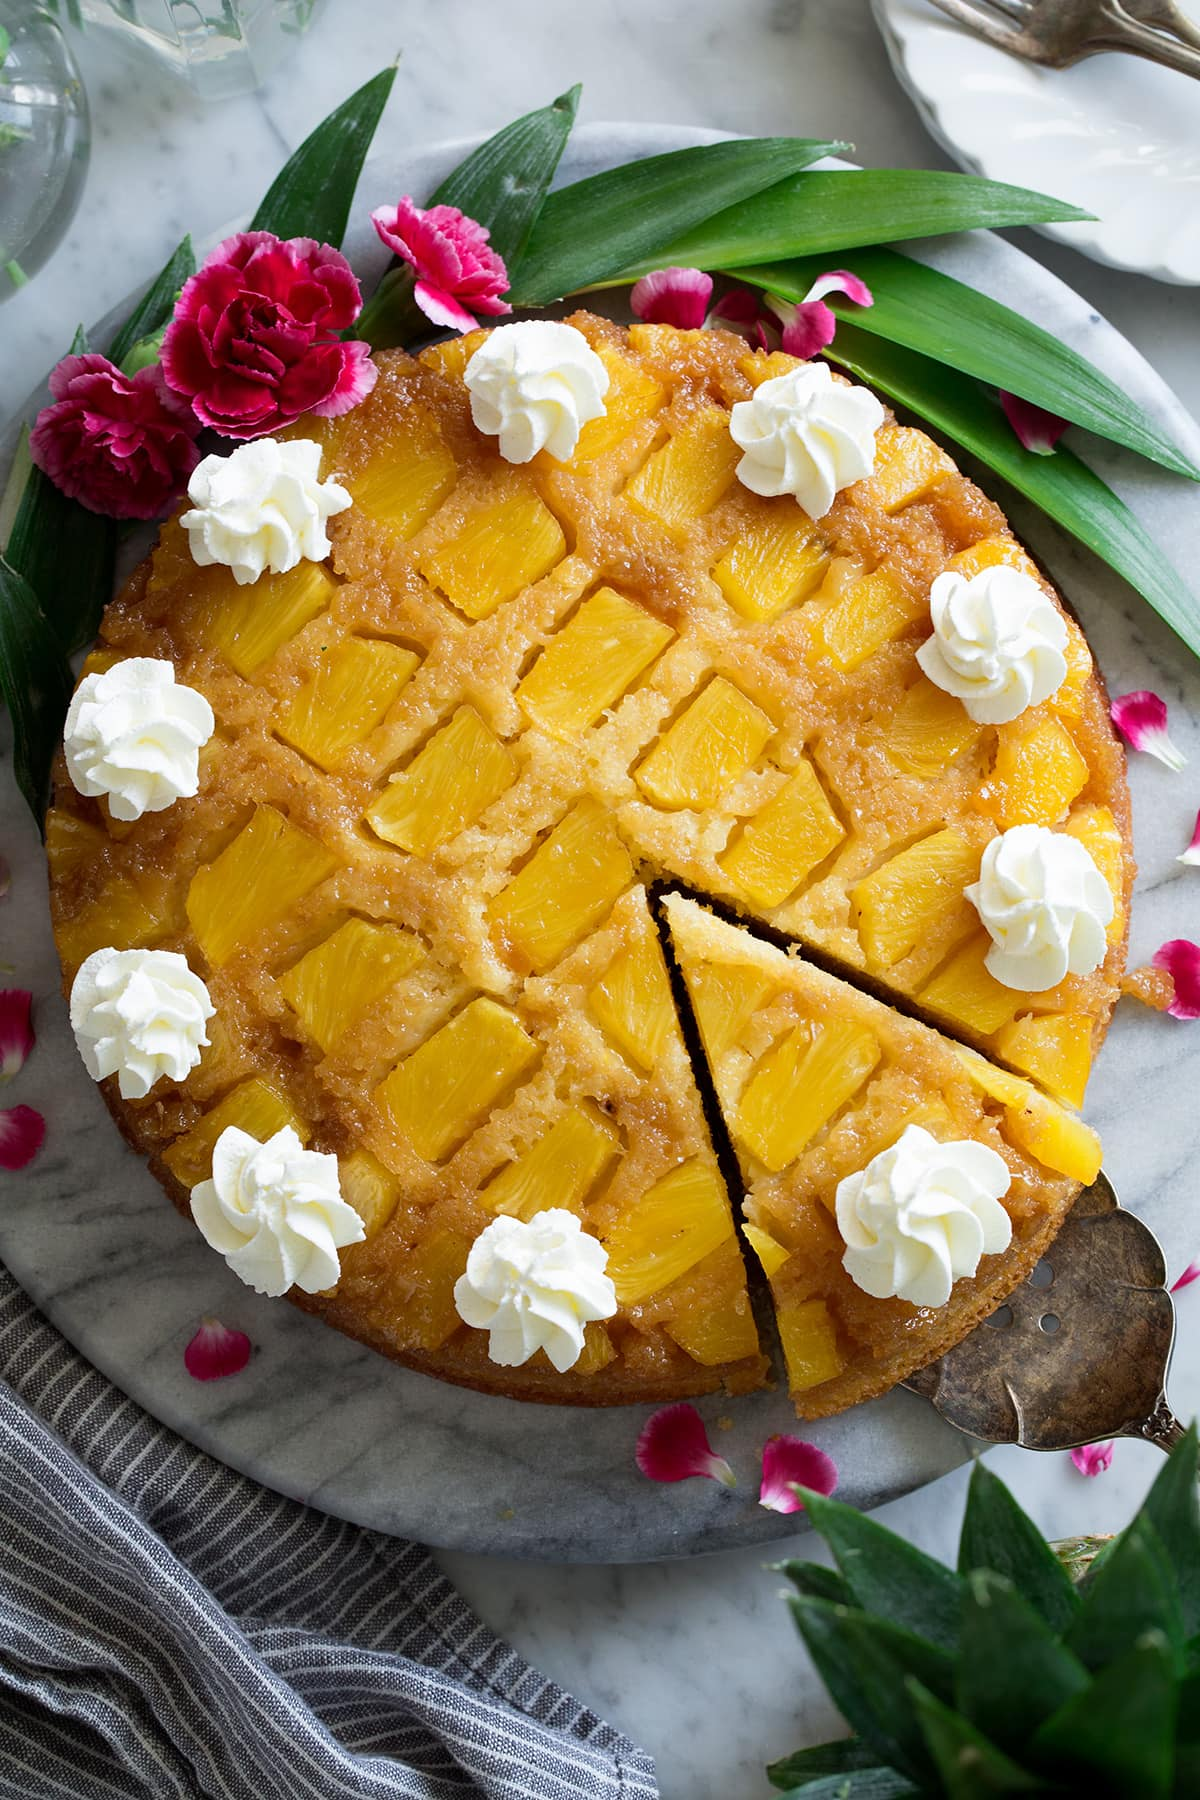 Pineapple Upside Down Cake Recipe - Cooking Classy